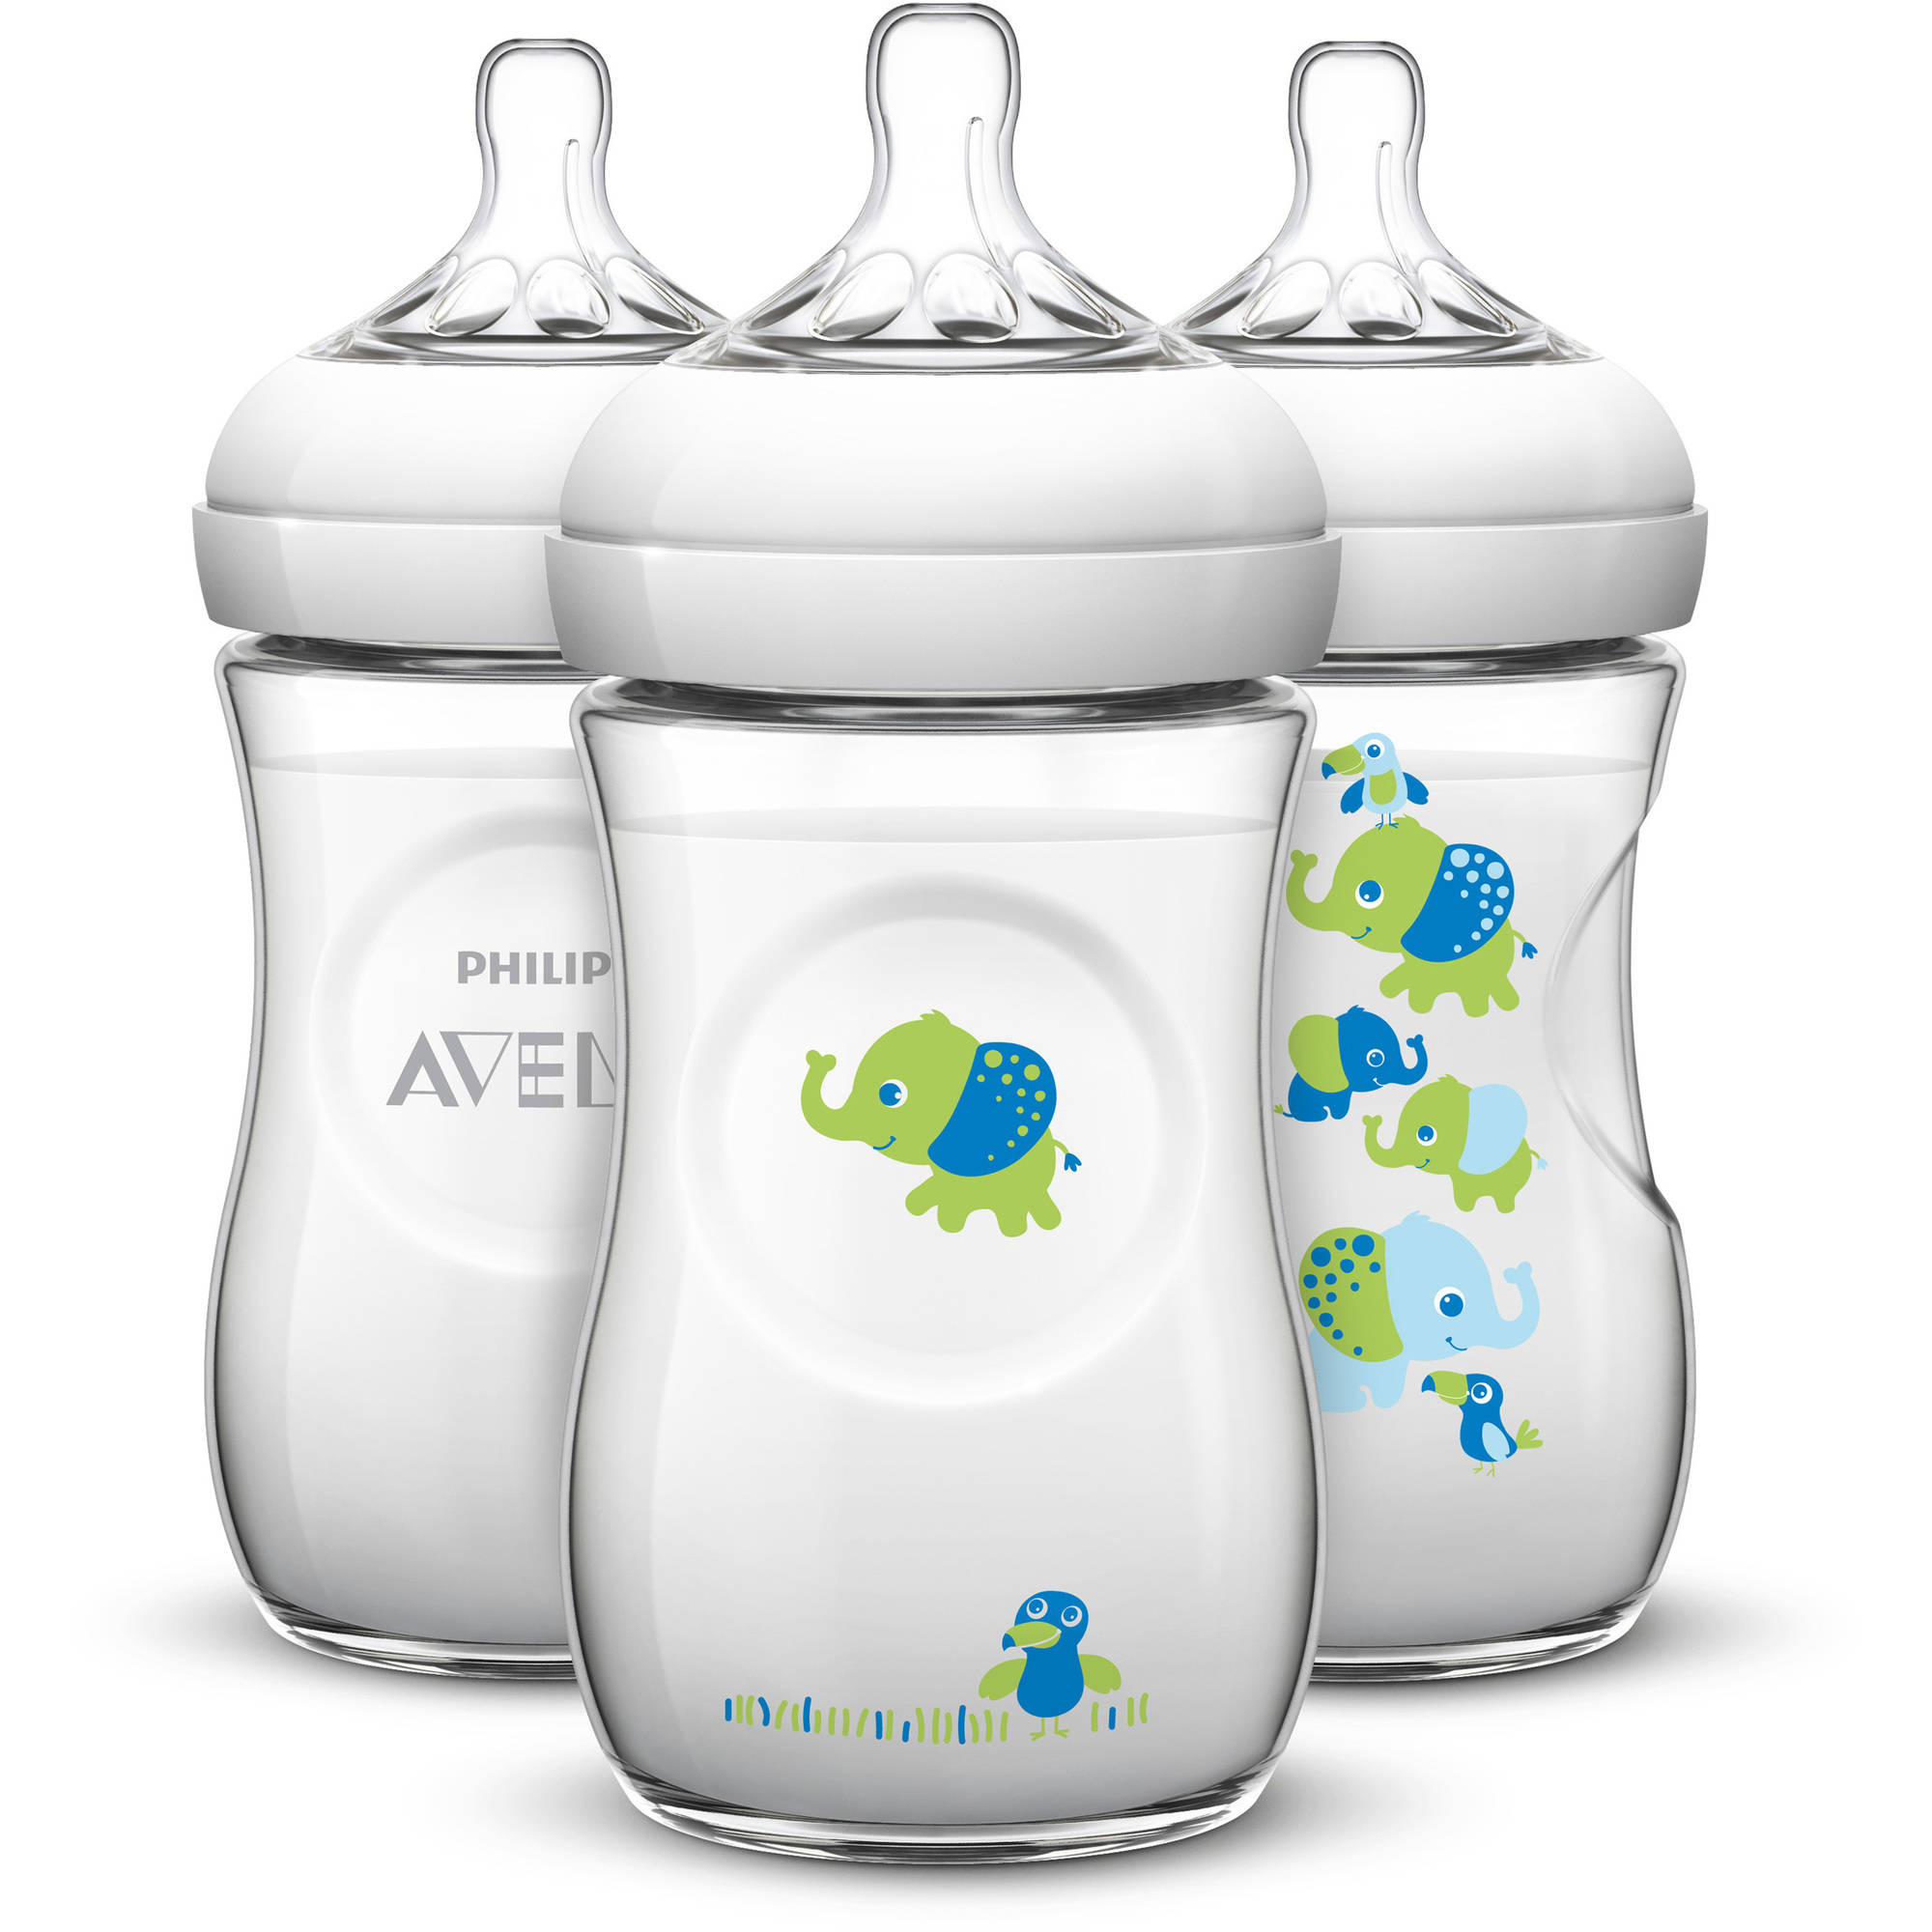 Philips Avent BPA-Free Natural Boy Safari Baby Bottles, 9 Ounce, 3 Pack